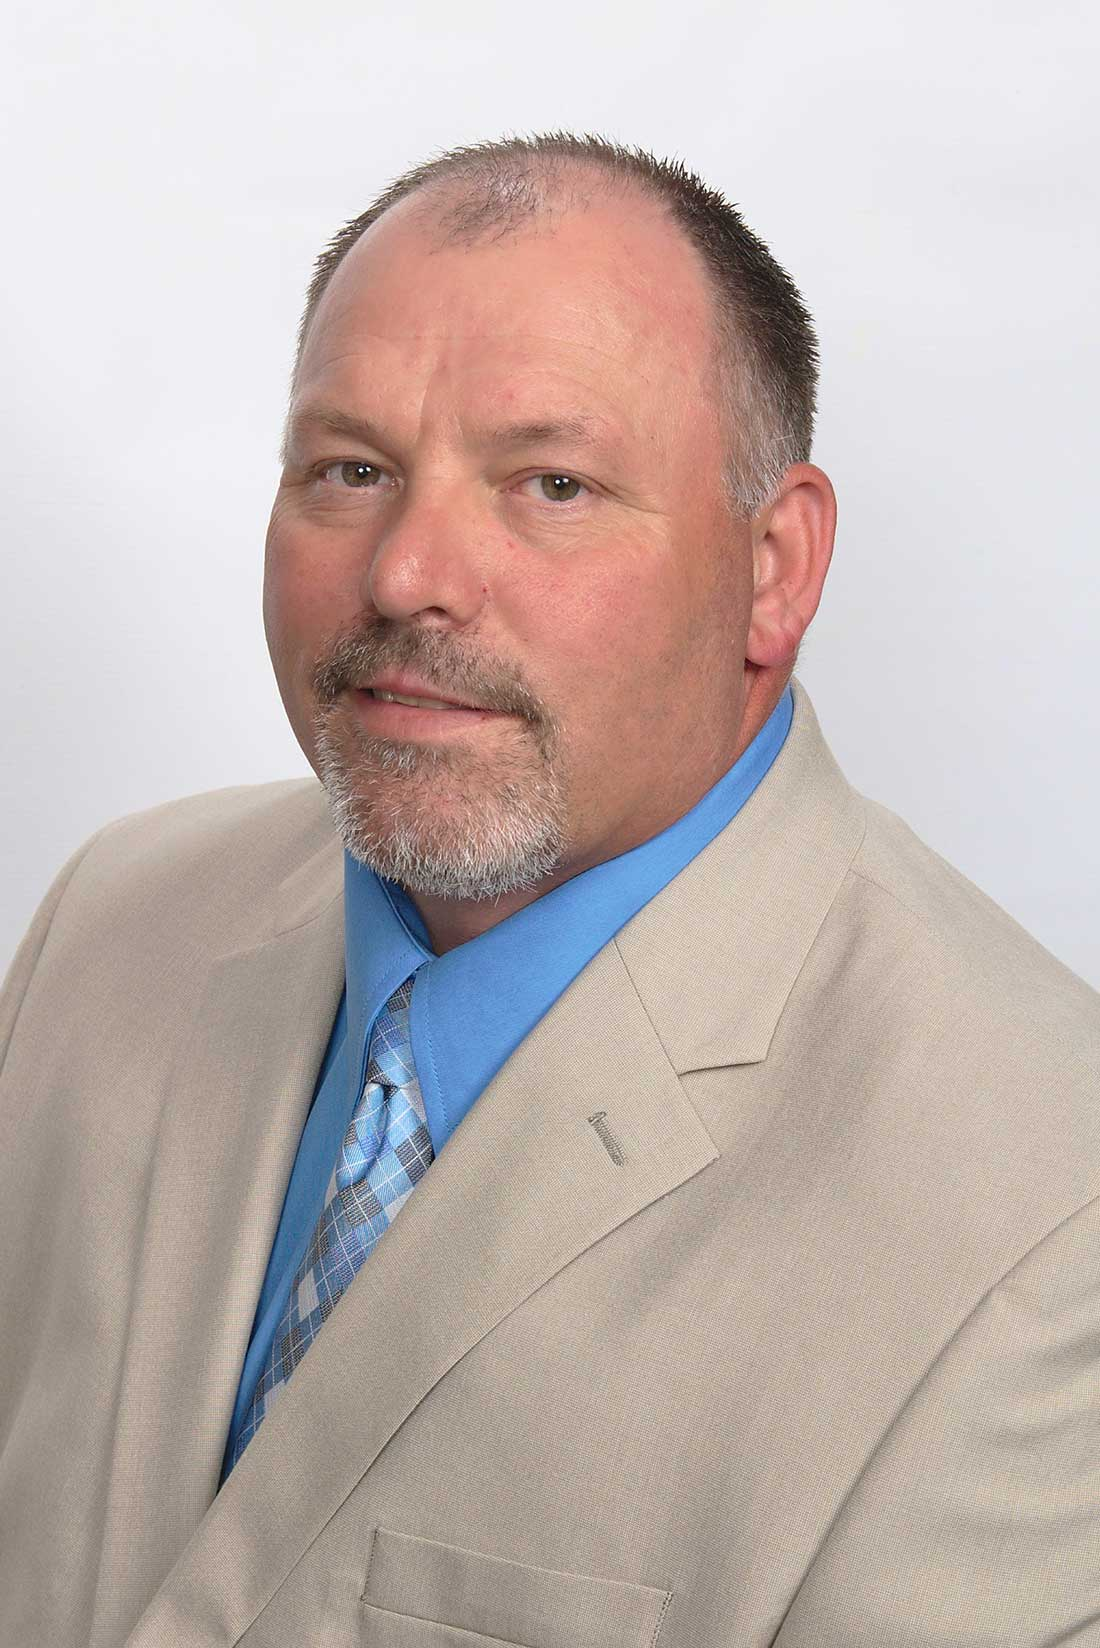 Steve C. Fisher, Care Center Manager/Funeral Director